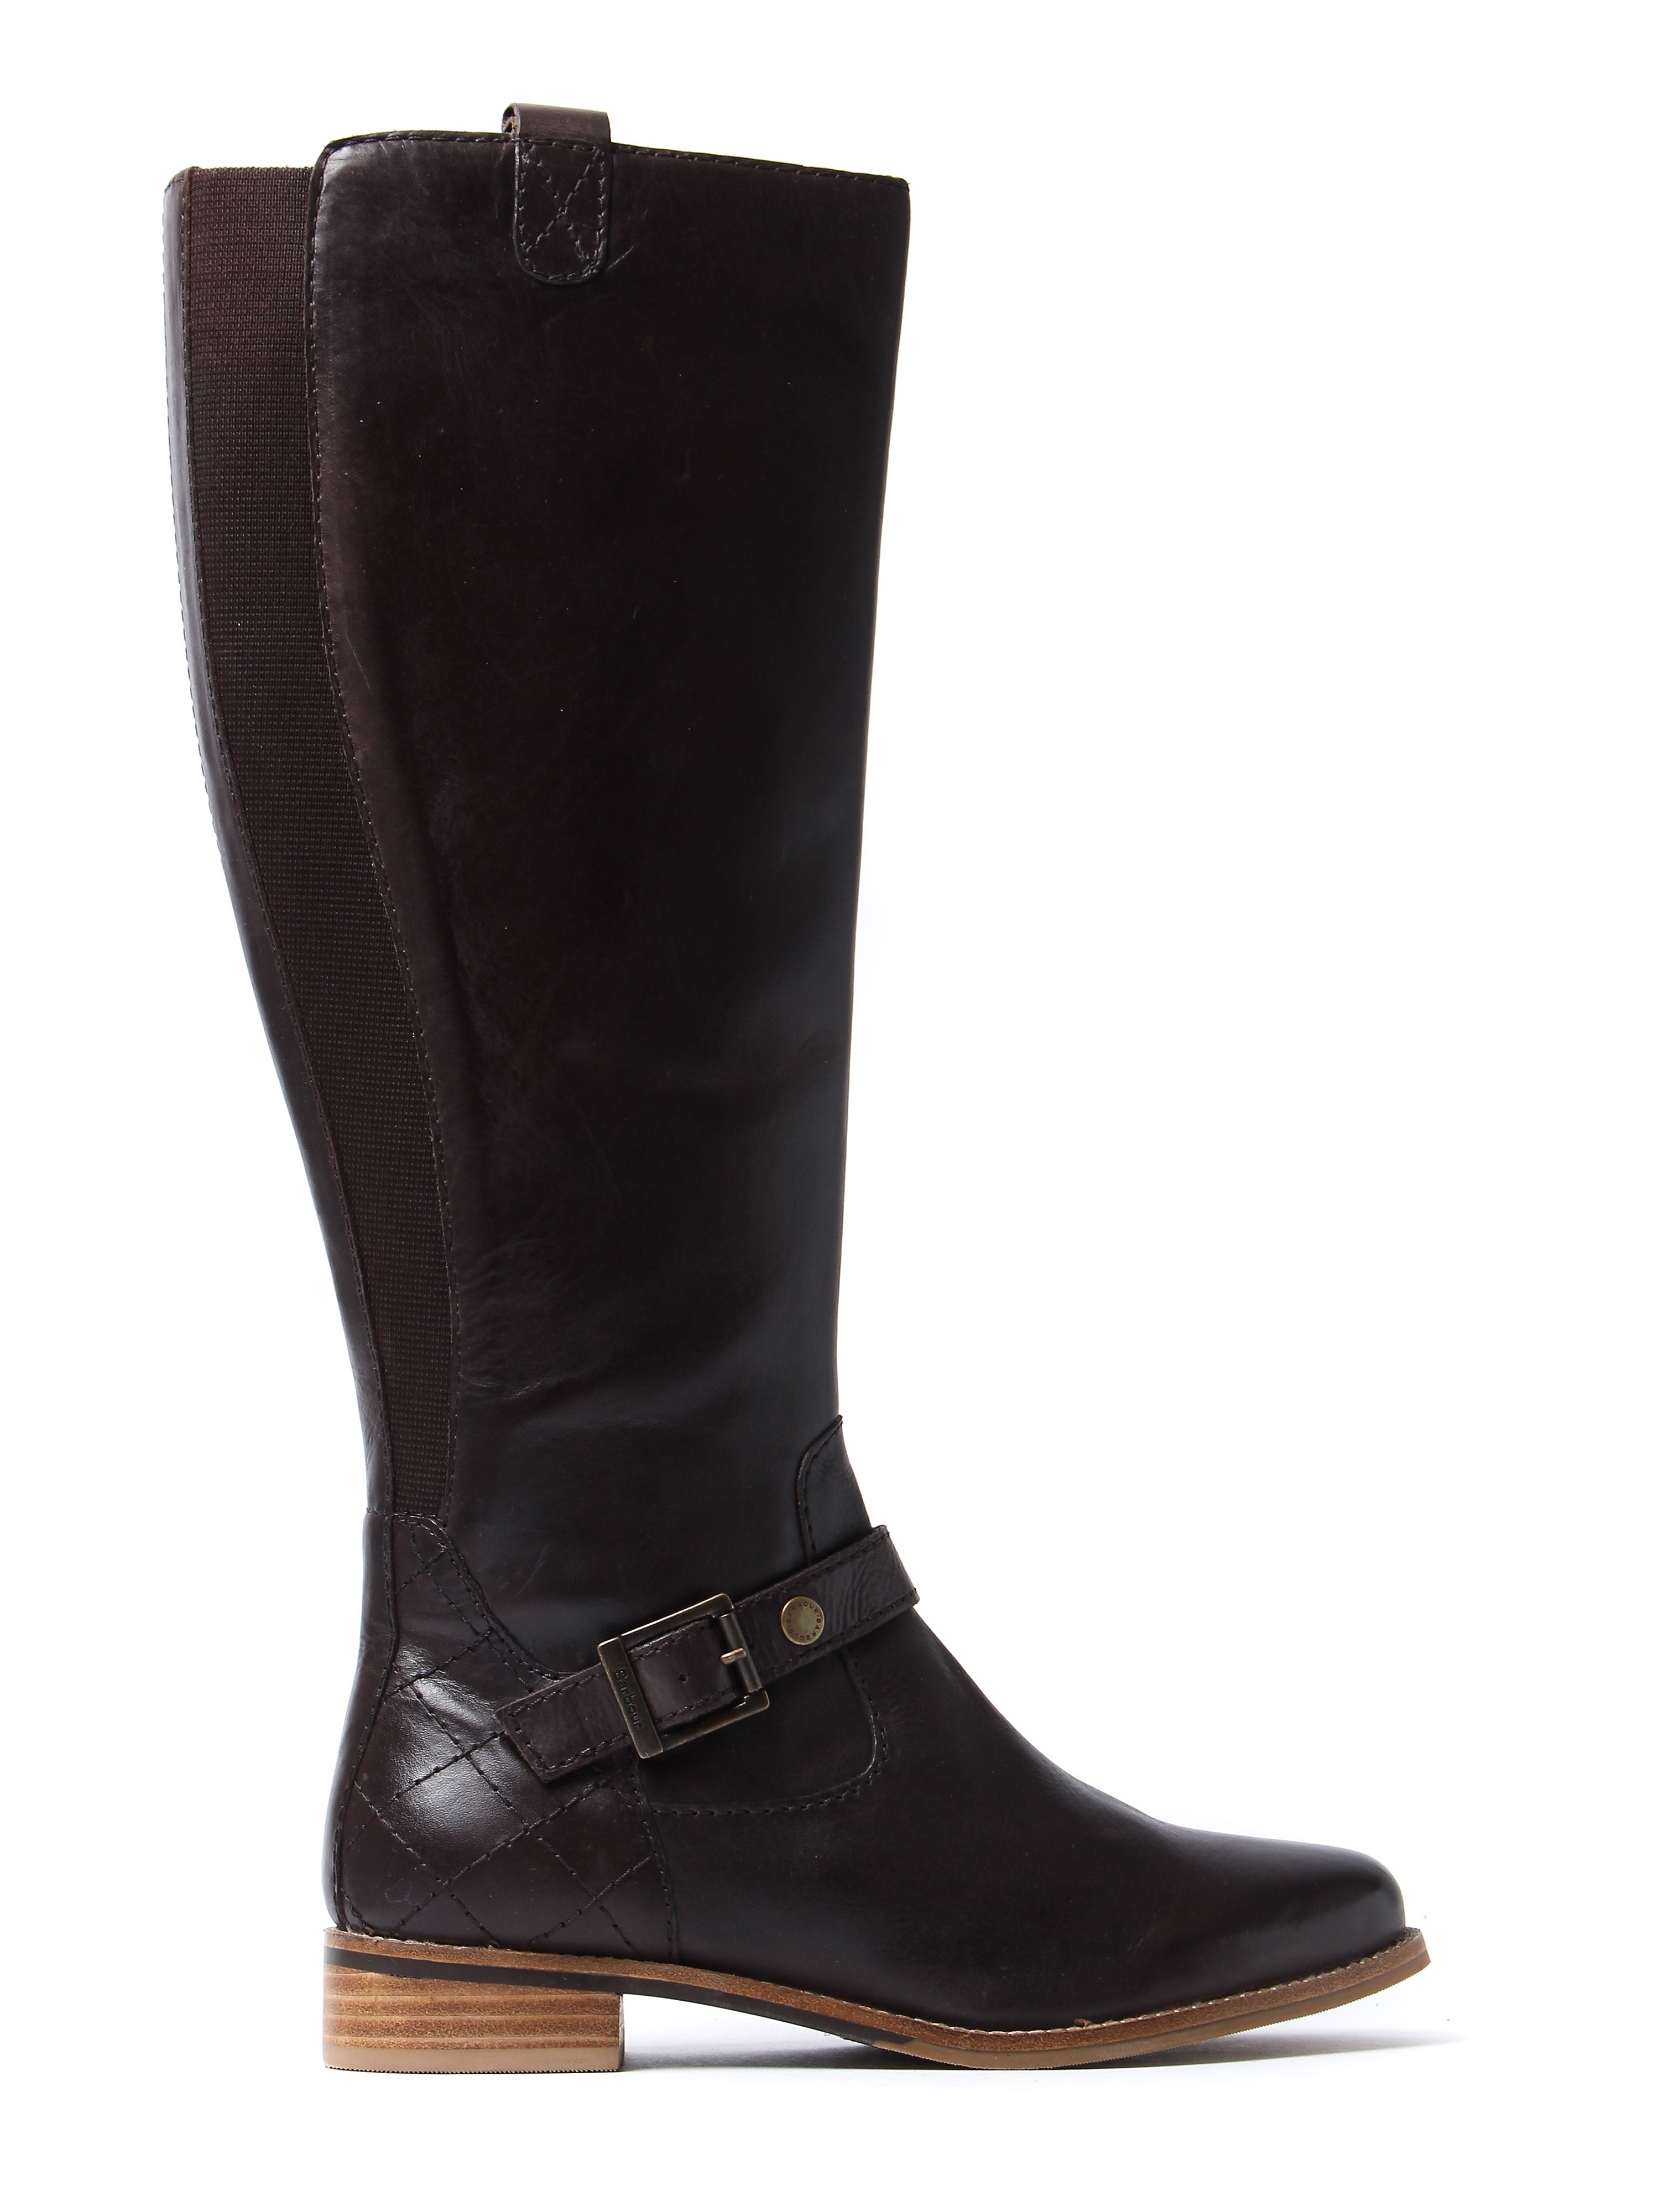 Barbour Women's Georgia Tall Boots - Brown Leather